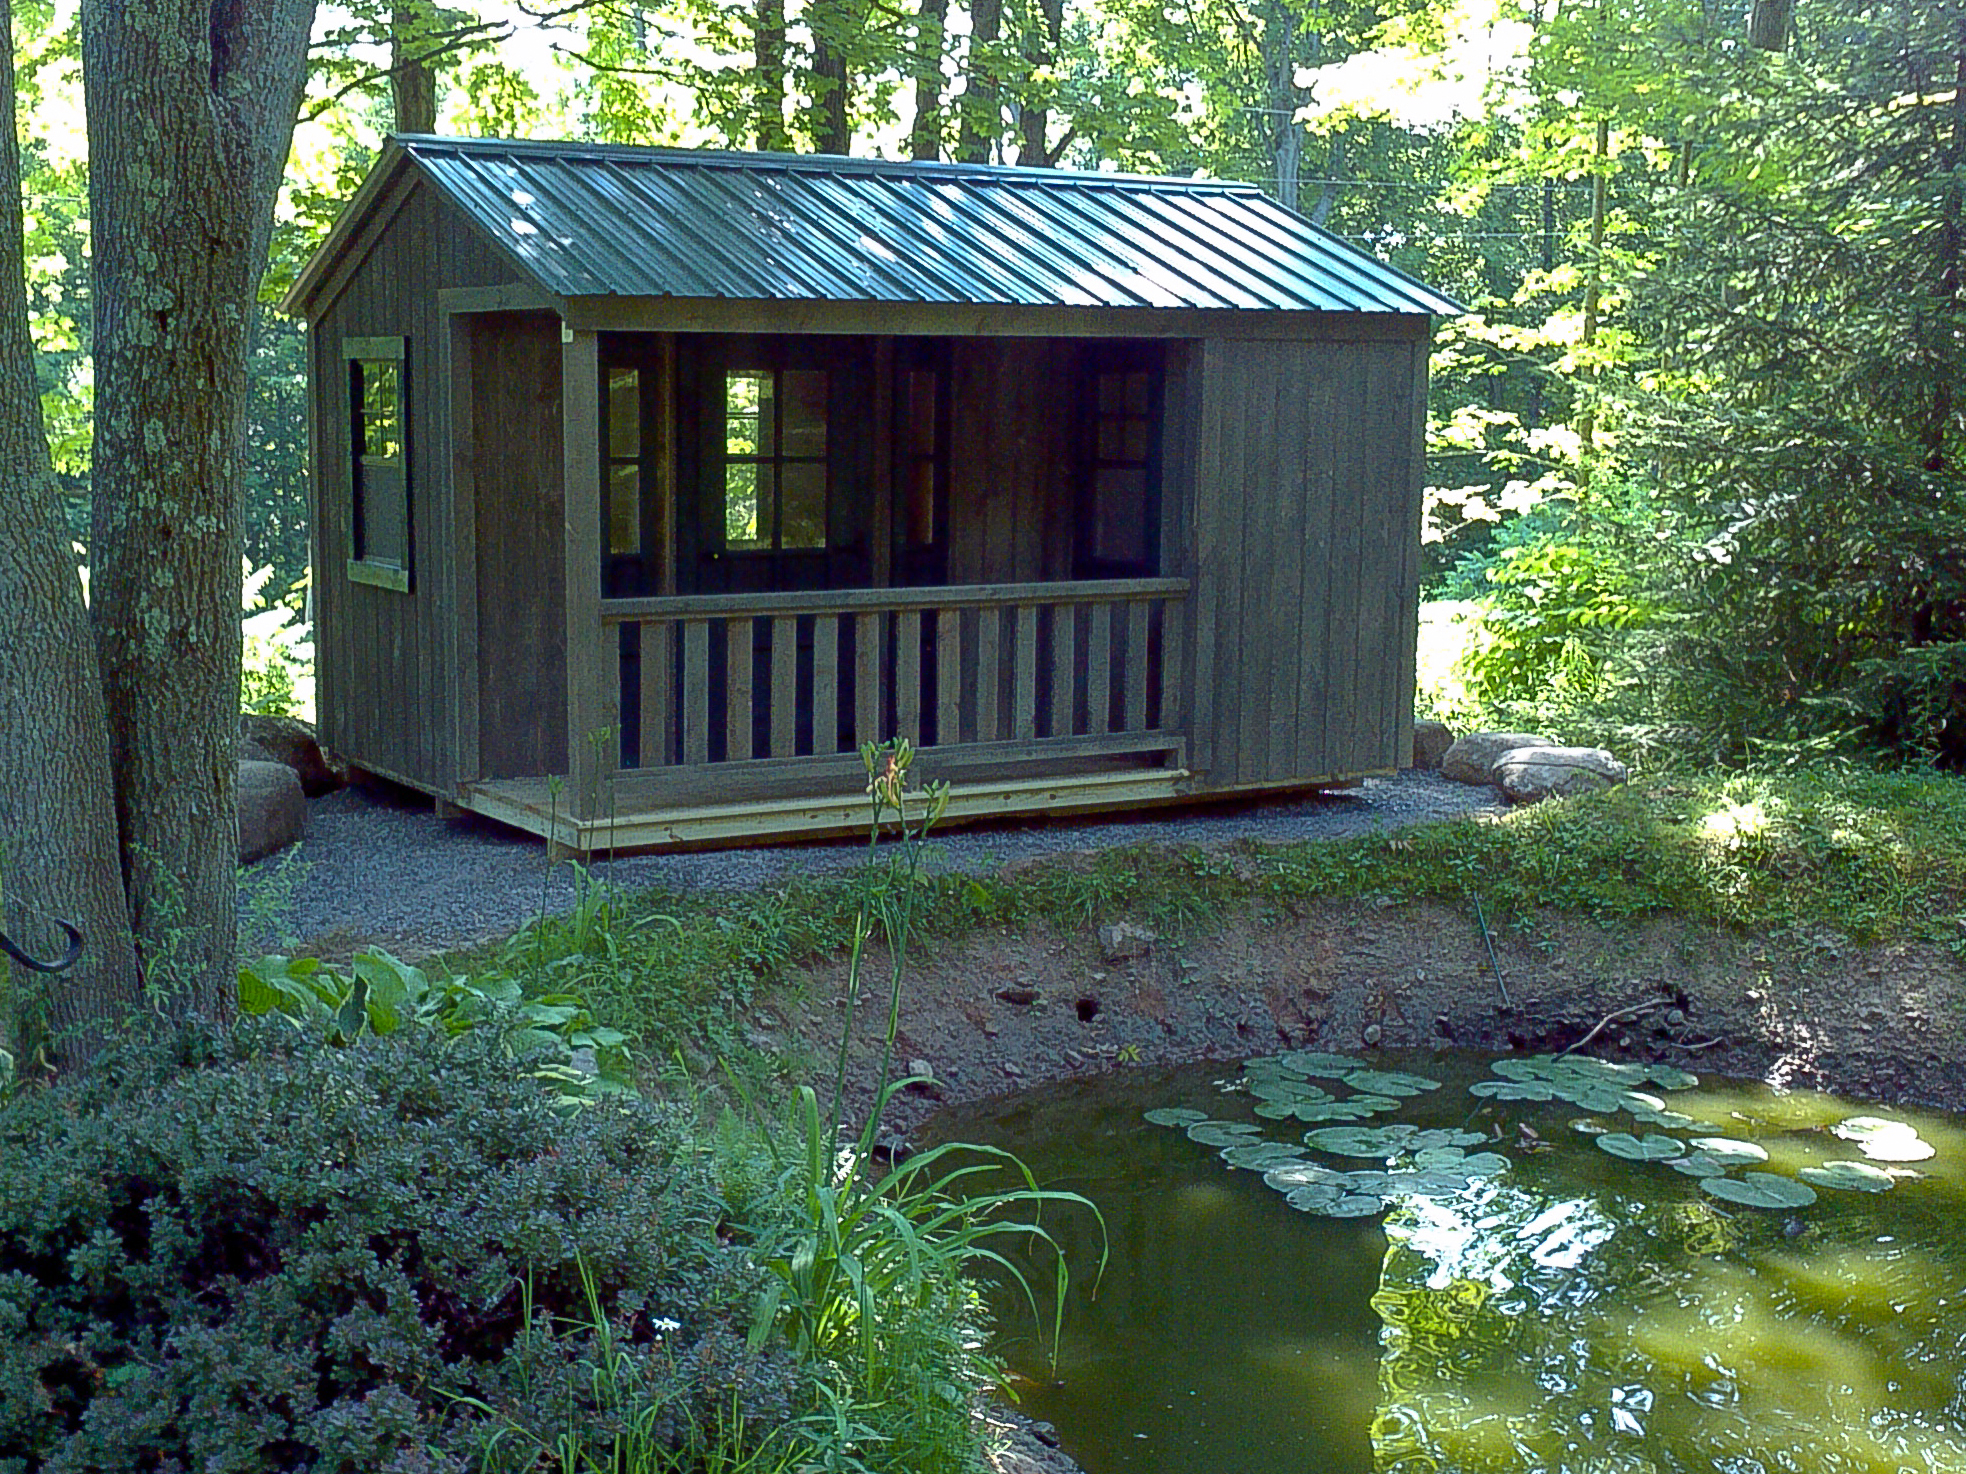 Ugs blog finger lakes ny uniquegardensheds for Name something you keep in a garden shed